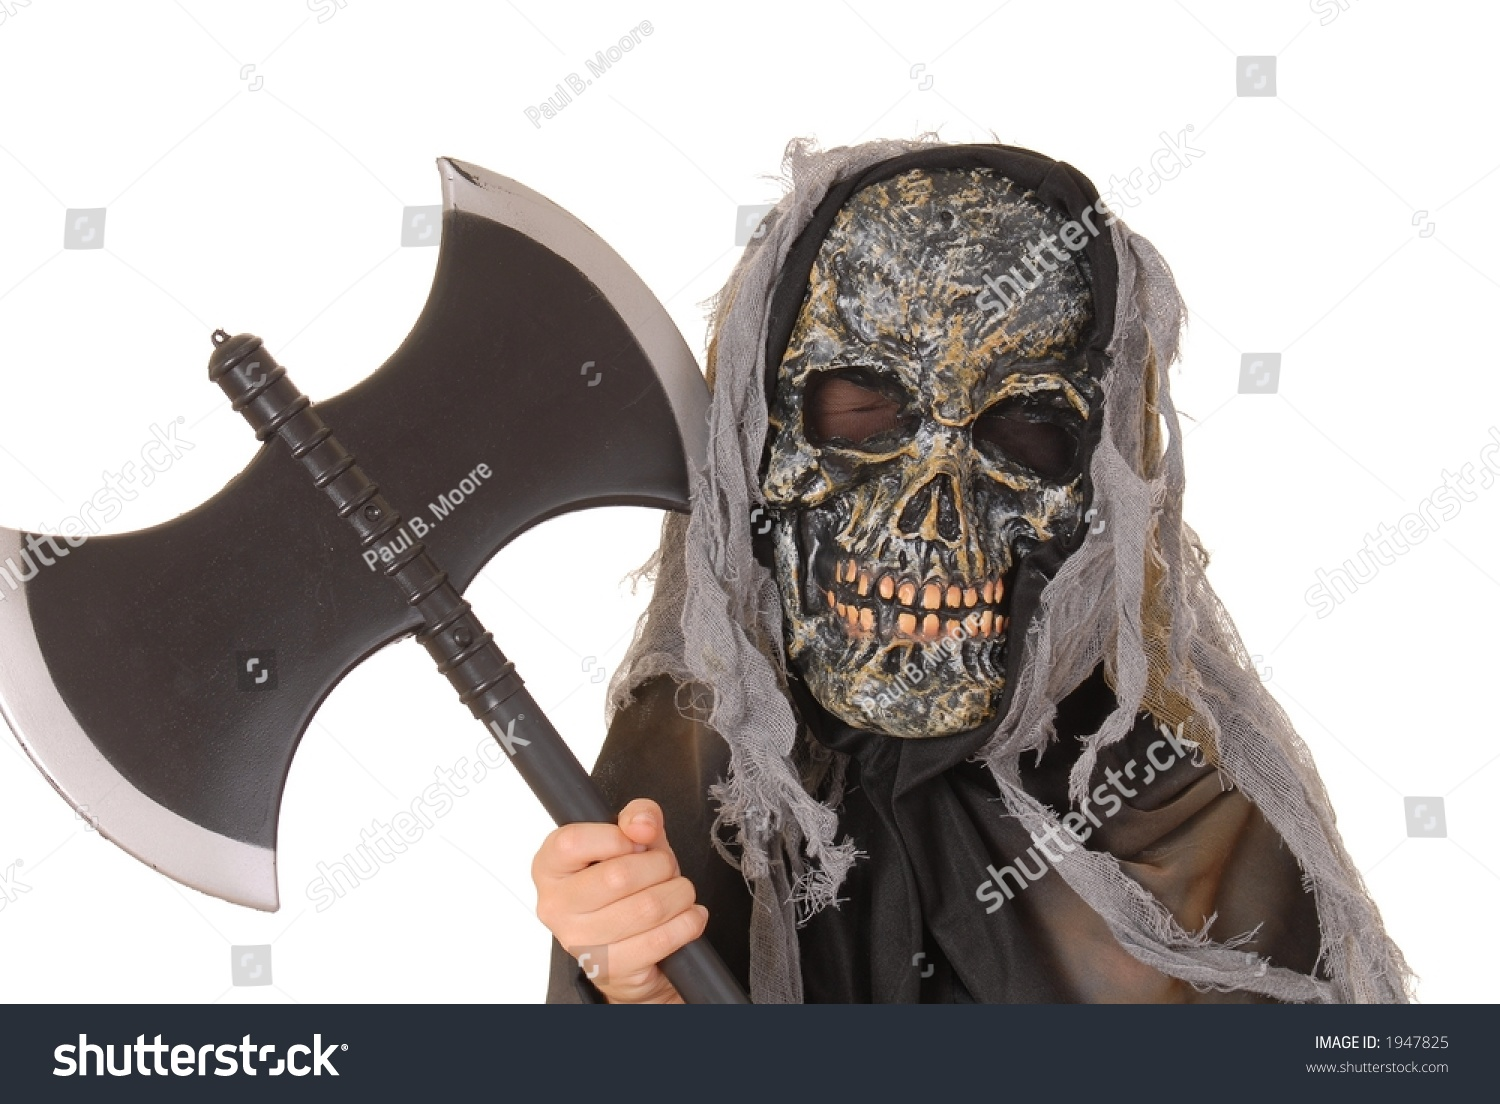 Young Boy Ghoul Halloween Costume Stock Photo 1947825 - Shutterstock